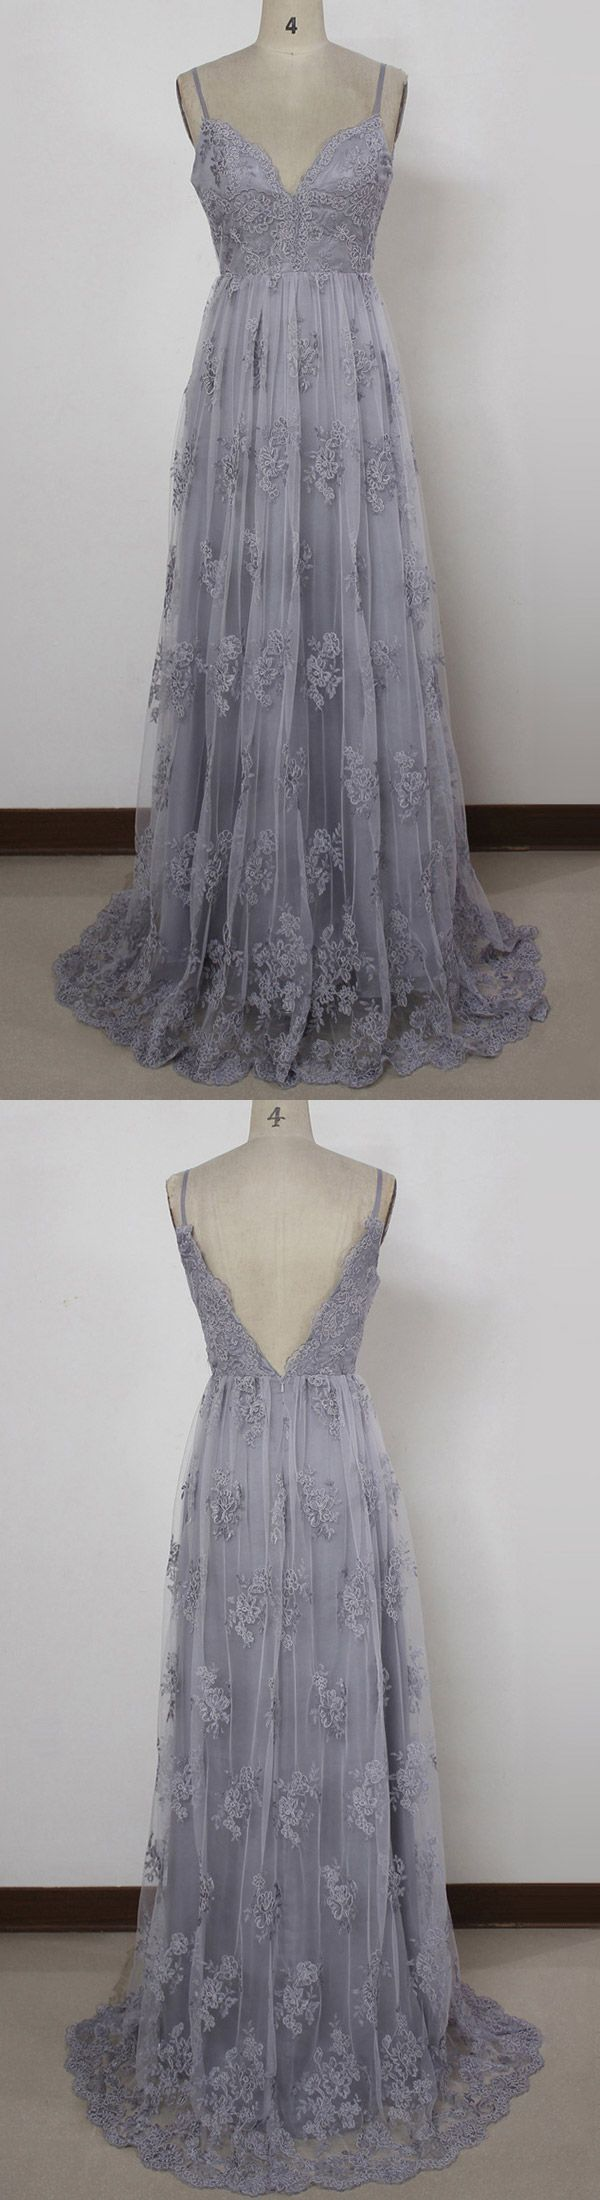 Grey Prom Dresses Long, Lace Party Dresses A-line, Sexy Evening Gowns V-neck, Country Prom Dresses for Teens